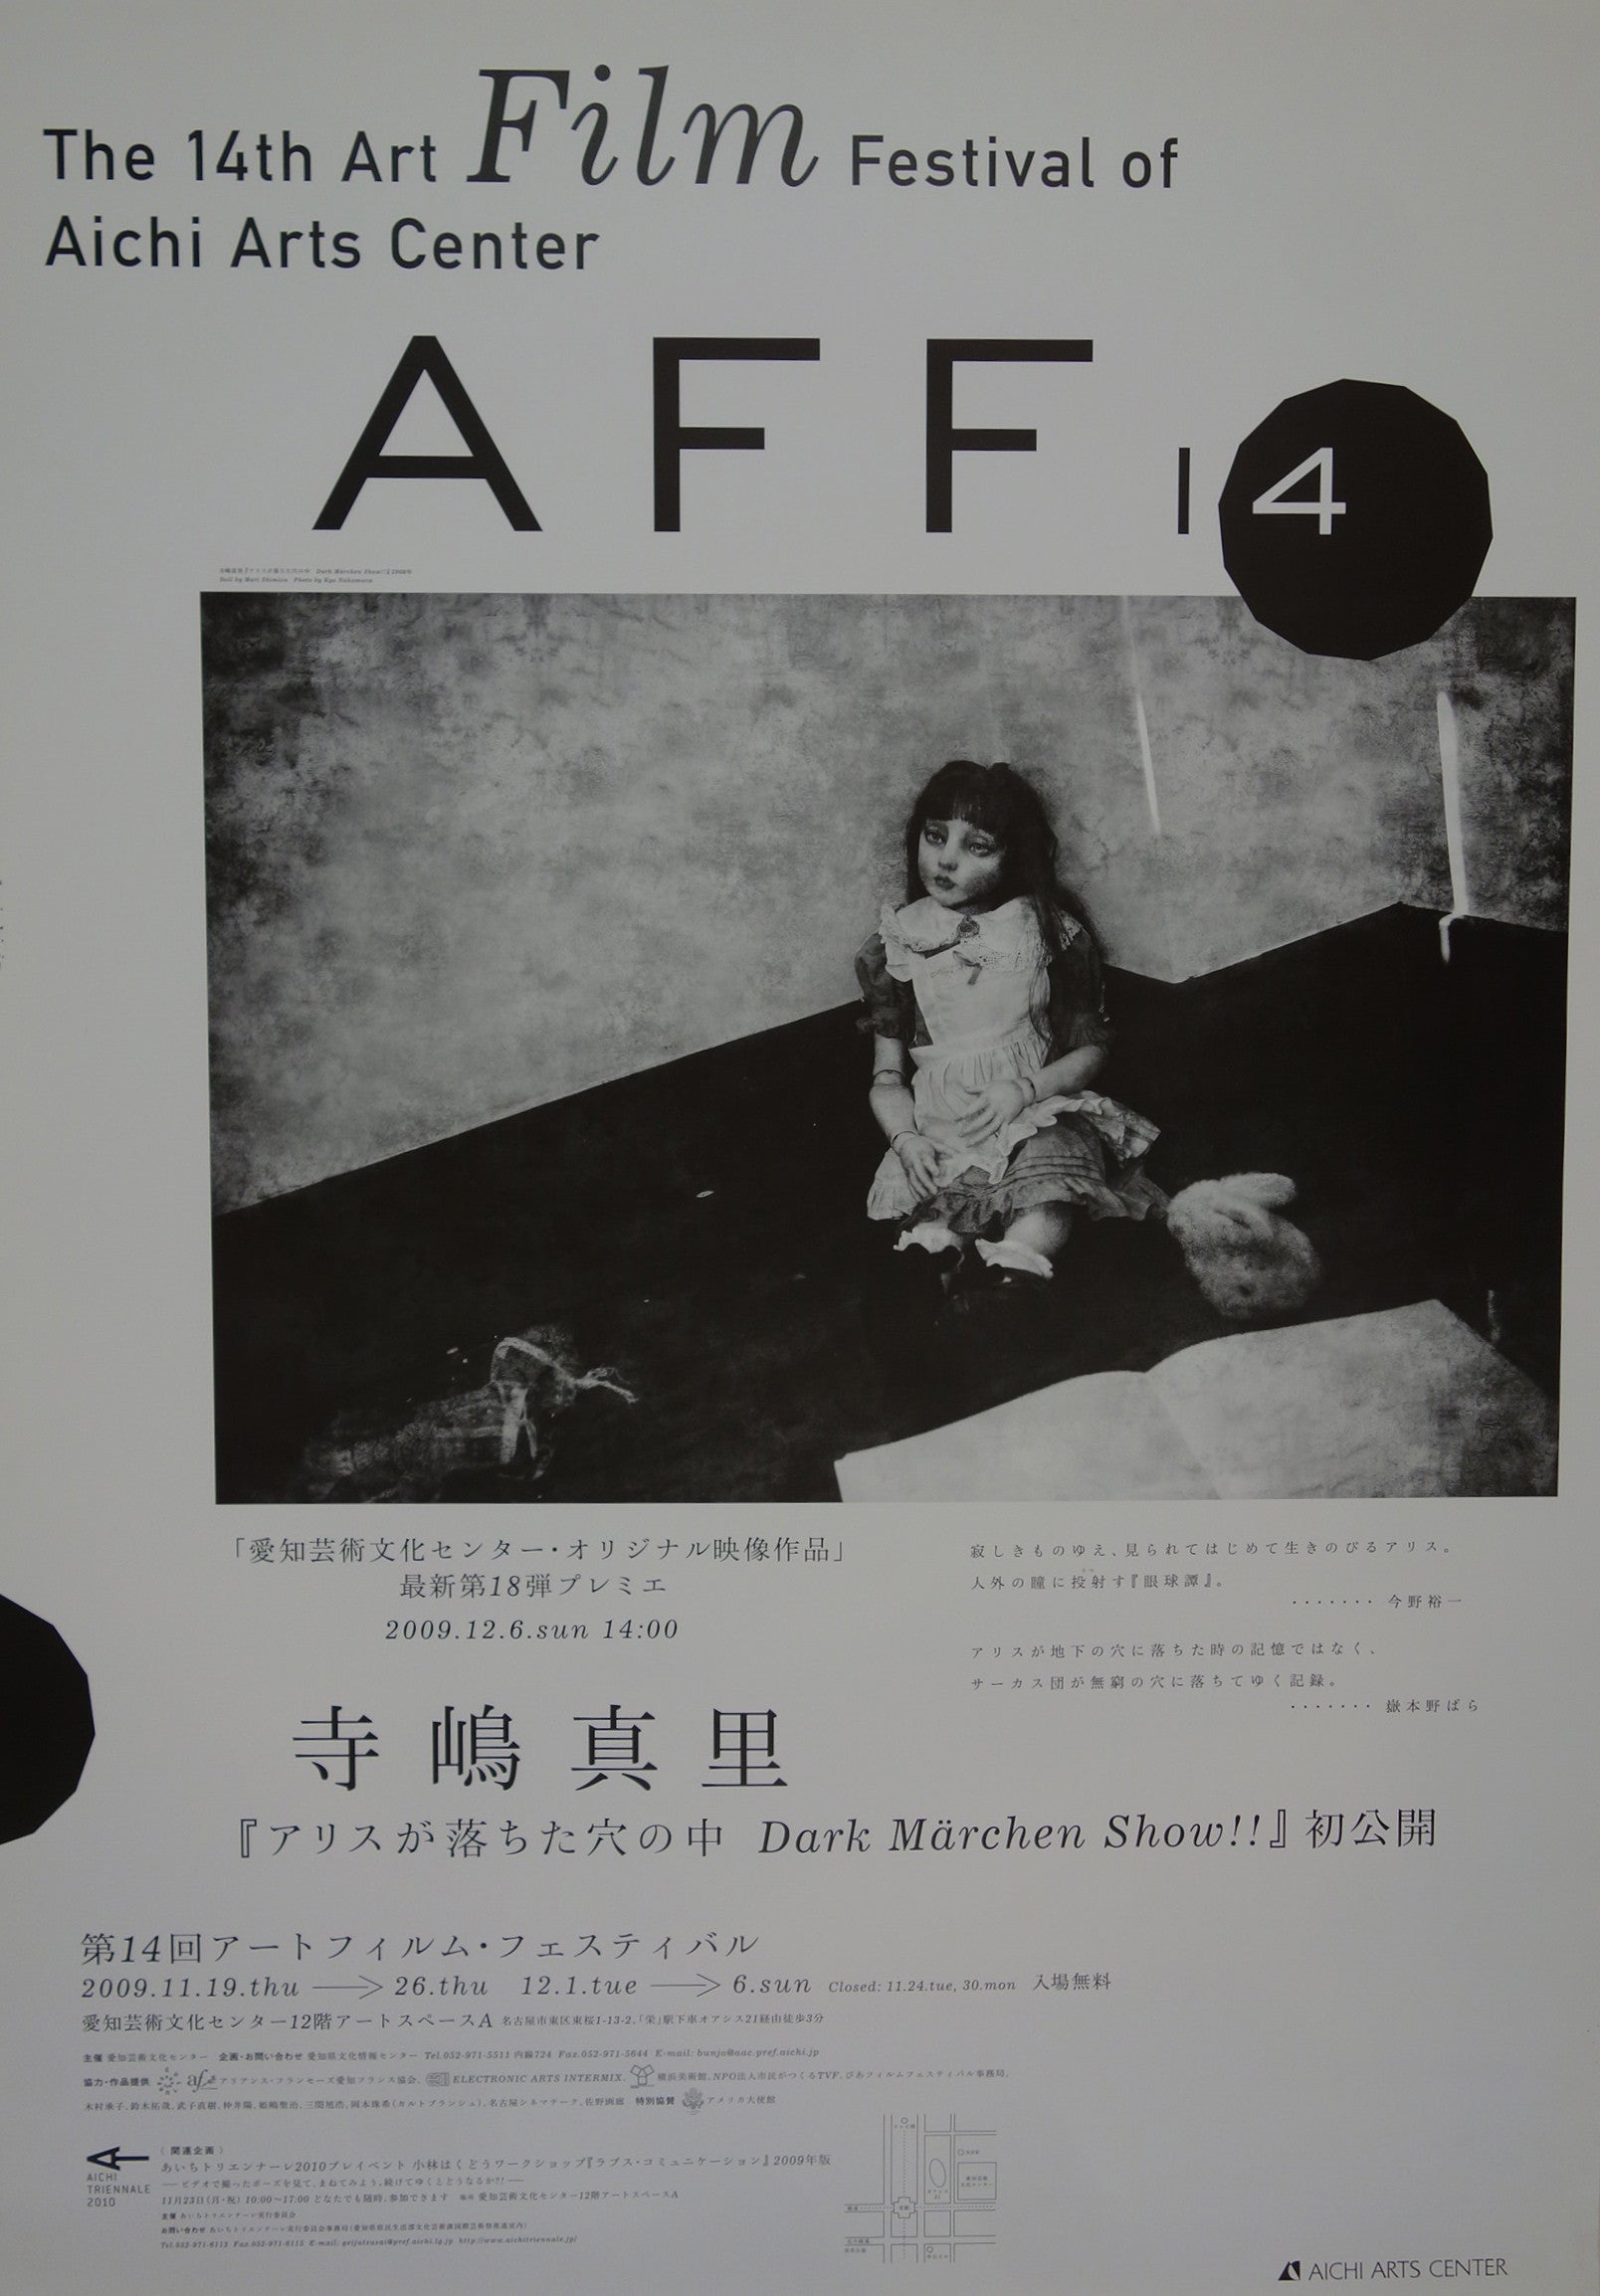 Art Film Festival of Aichi Arts Center